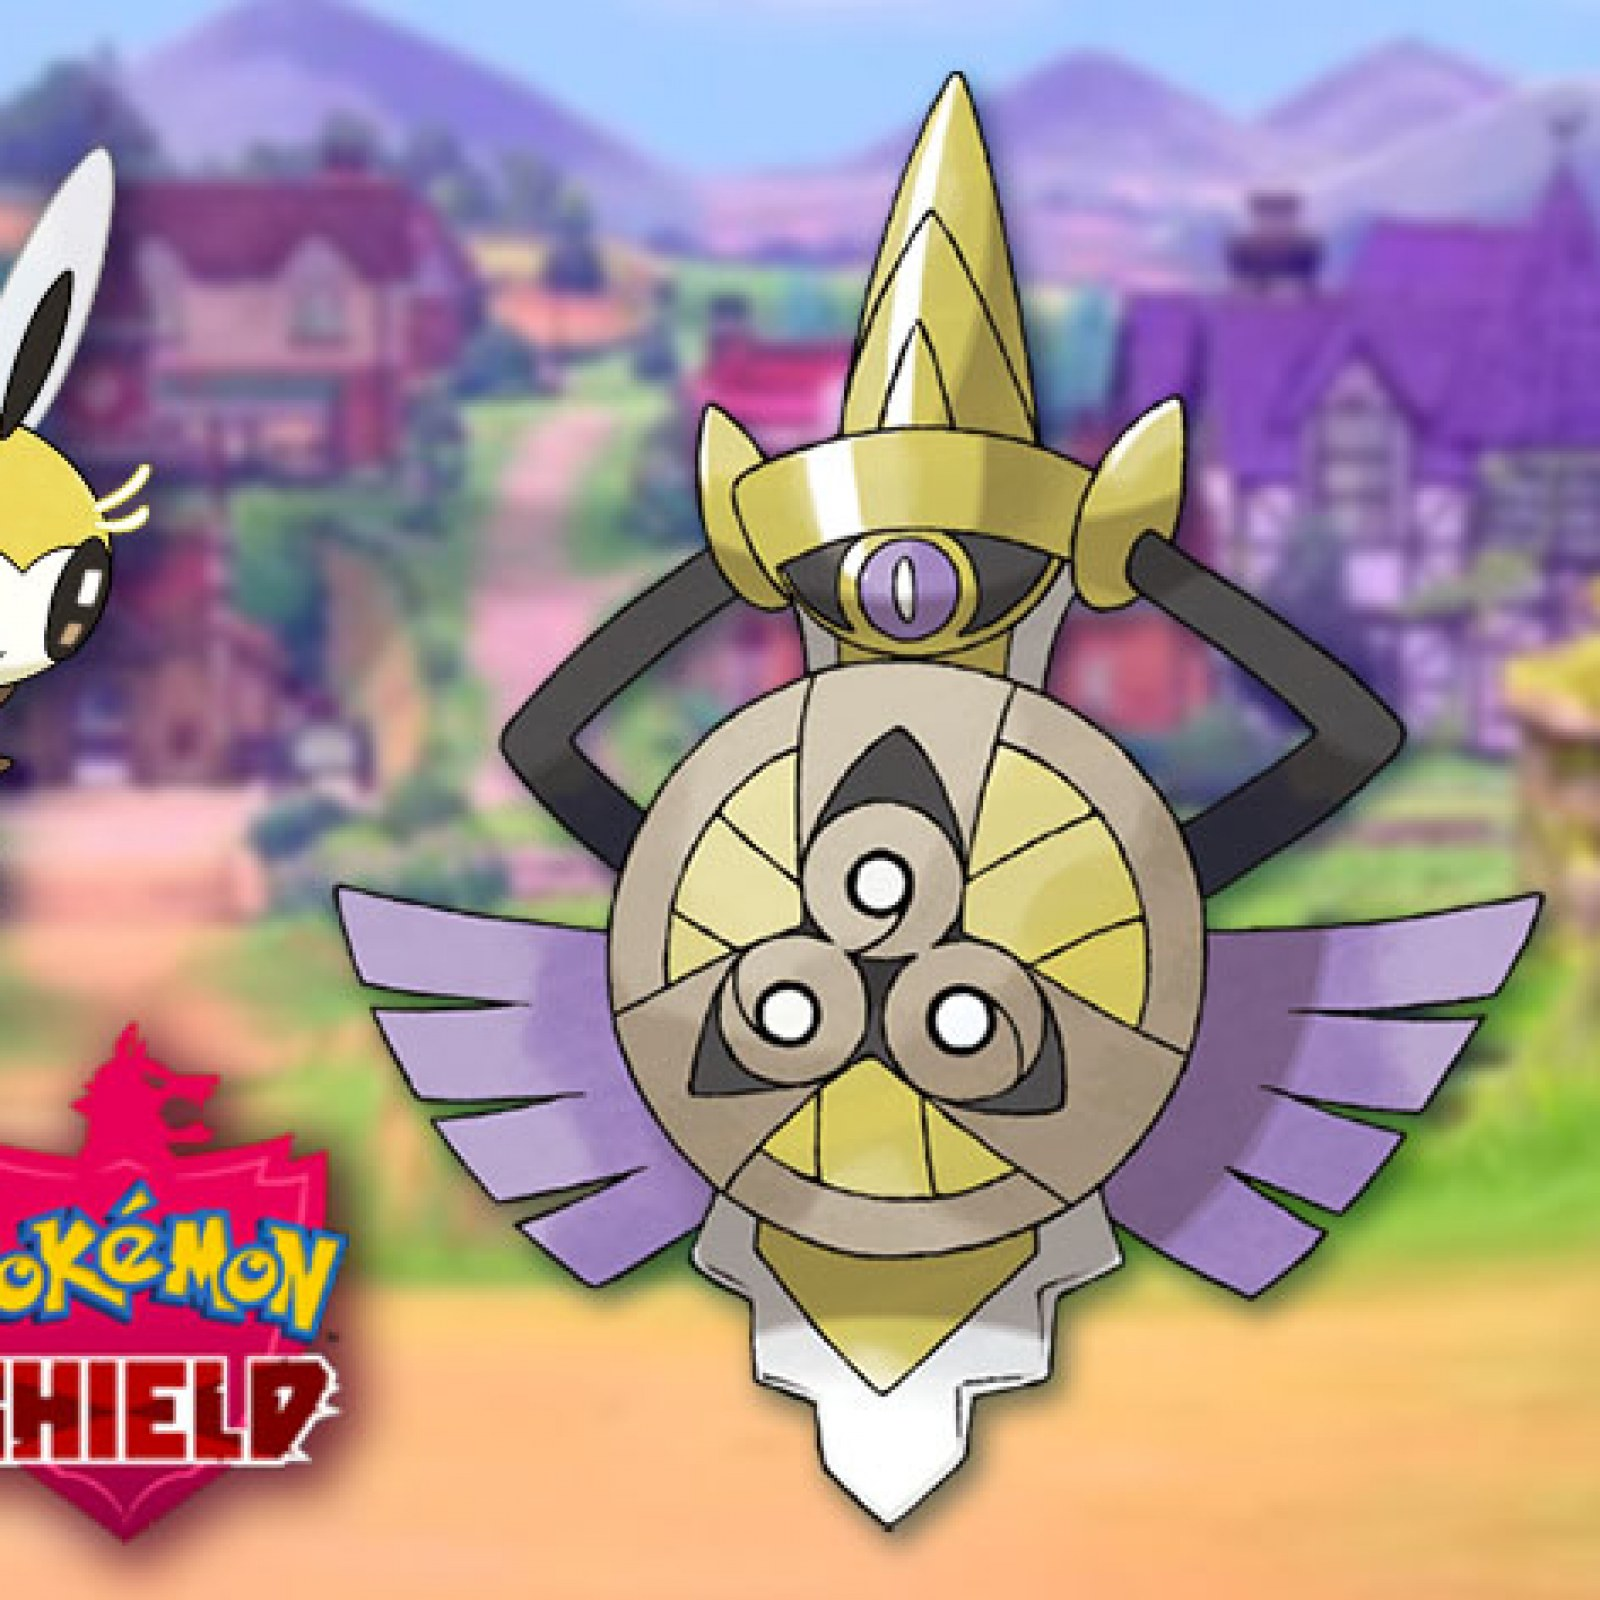 More Pokémon Confirmed to Return in 'Pokémon Sword and Shield'